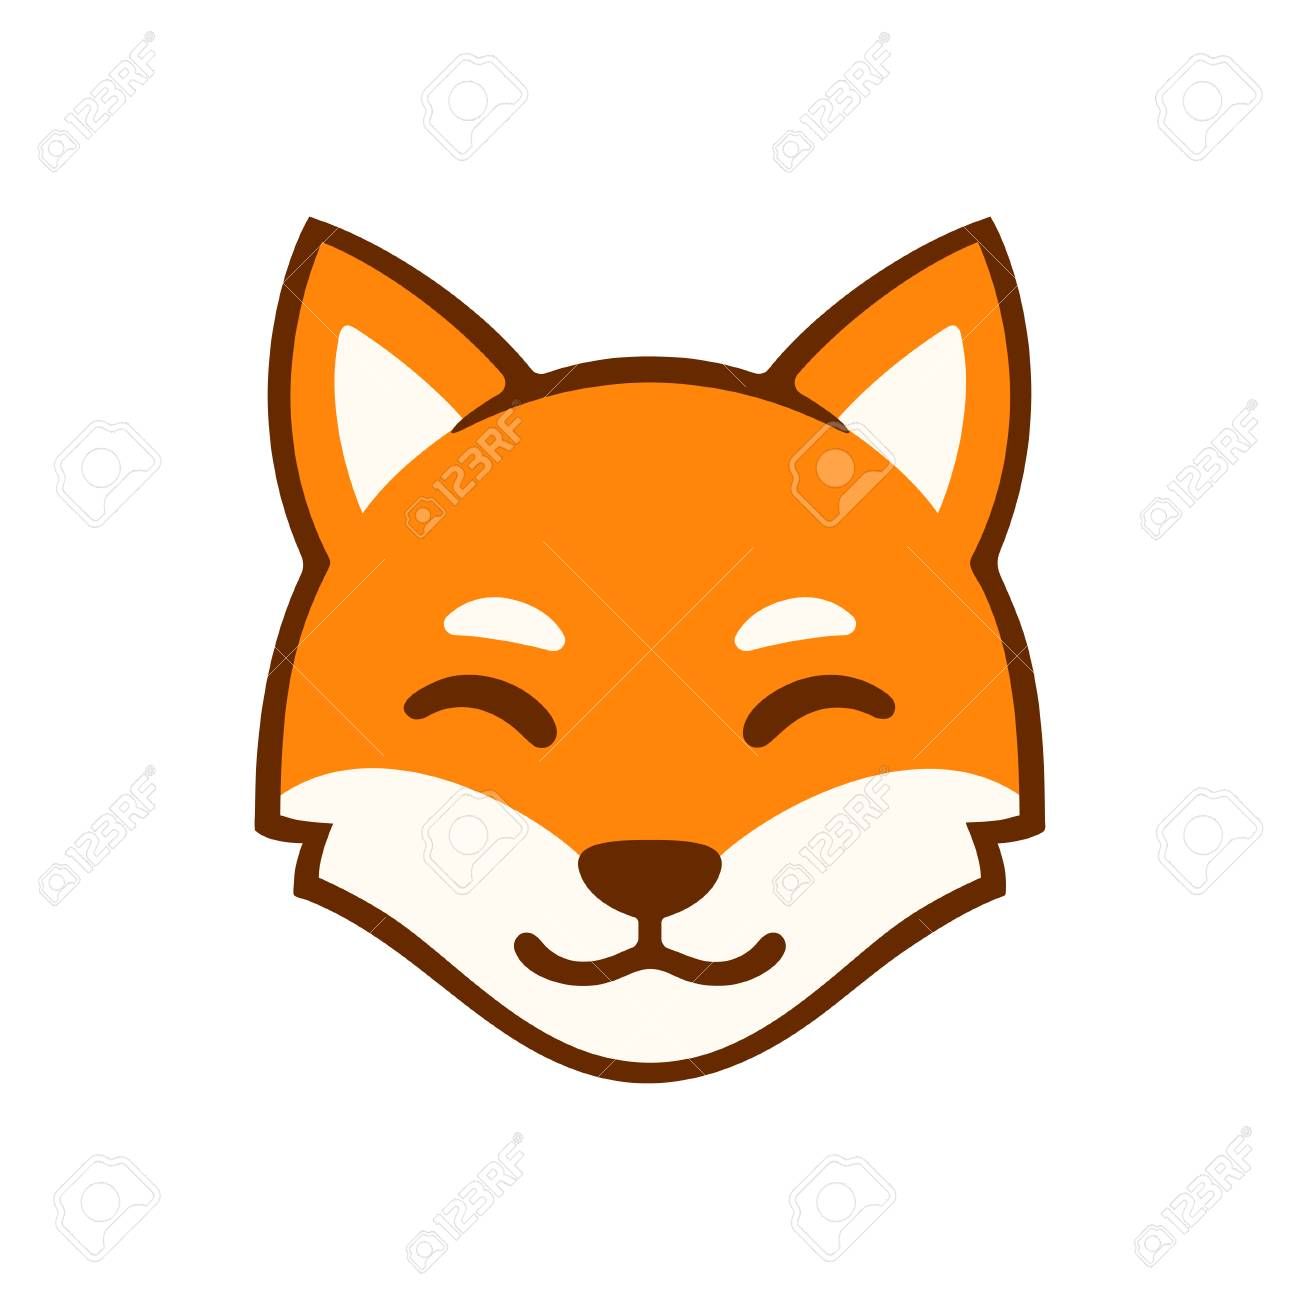 Cute Cartoon Smiling Fox Face Logo Stylized Red Fox Head Vector Royalty Free Cliparts Vectors And Stock Illustration Image 110278180